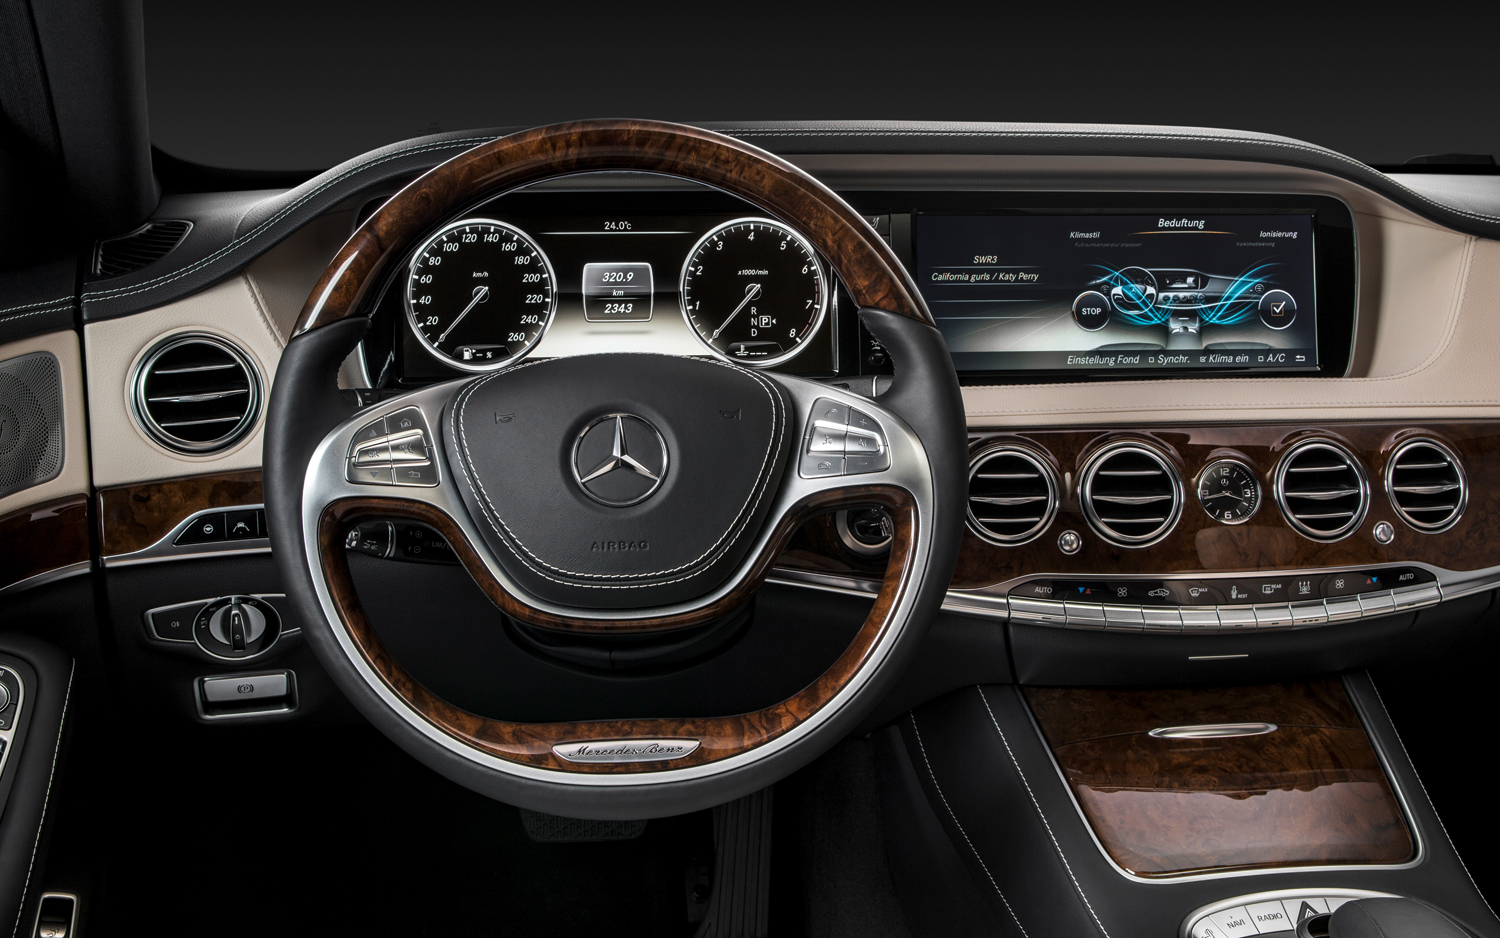 luxury auto review: the 2014 mercedes-benz s-class | damon m. banks